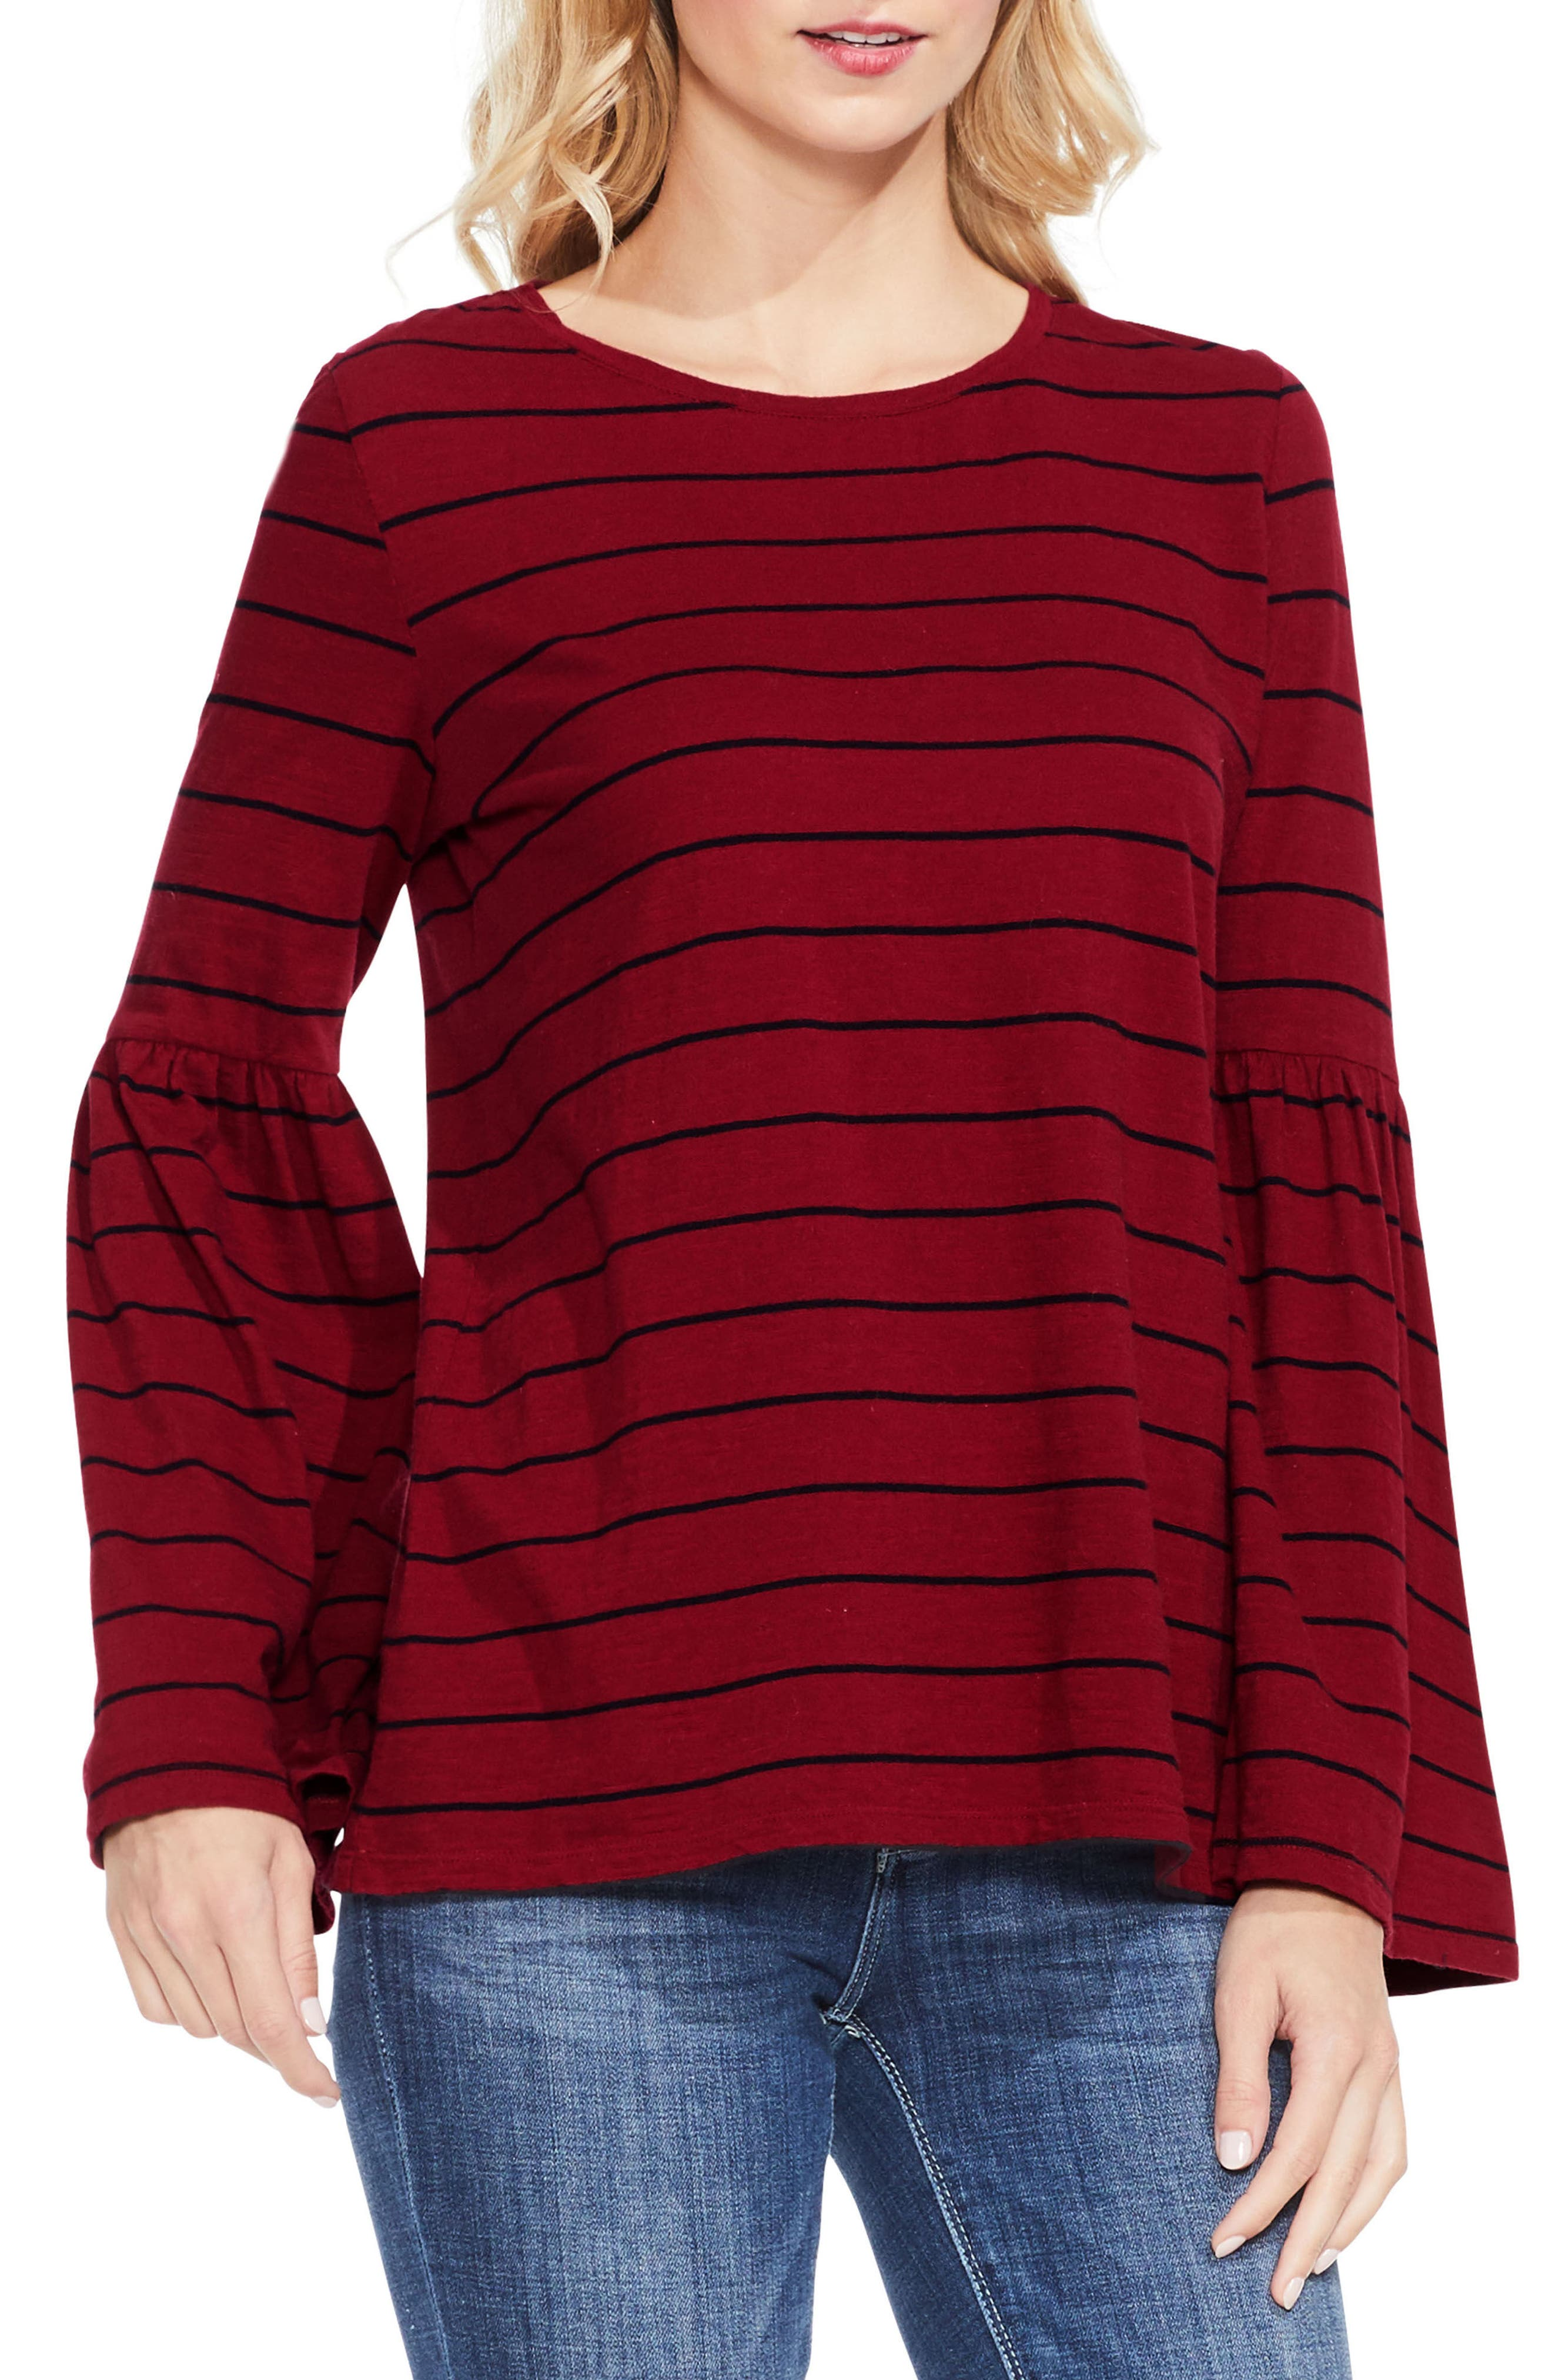 Alternate Image 1 Selected - Two by Vince Camuto Bell Sleeve Stripe Top